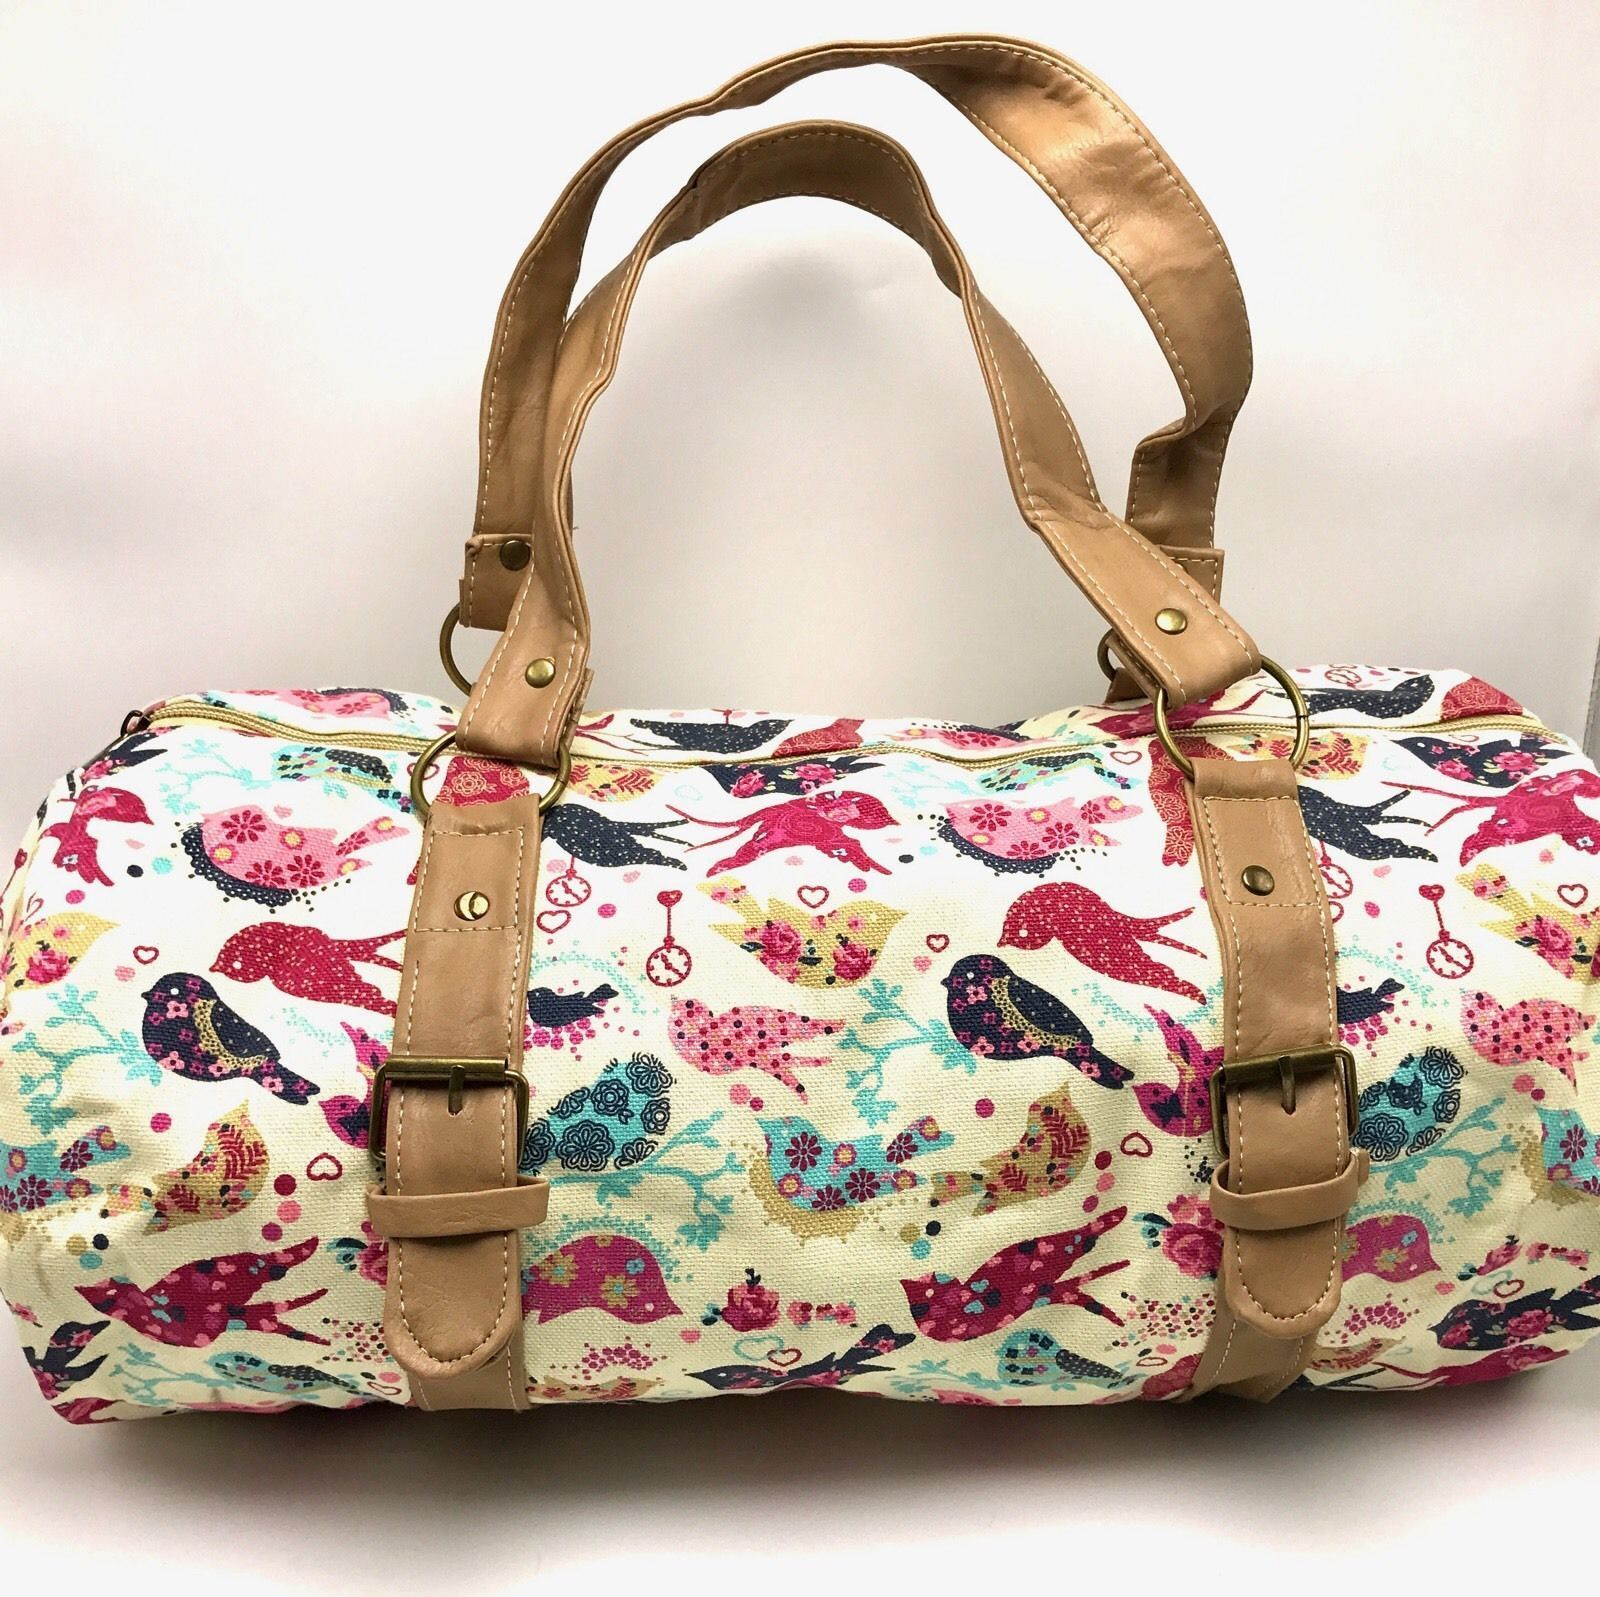 Check it out D'Luna Your So Tw... found at  http://keywebco.myshopify.com/products/dluna-your-so-tweet-duffle-bag-birds-canvas-art-tote-18x8in-home-school-gym-new?utm_campaign=social_autopilot&utm_source=pin&utm_medium=pin